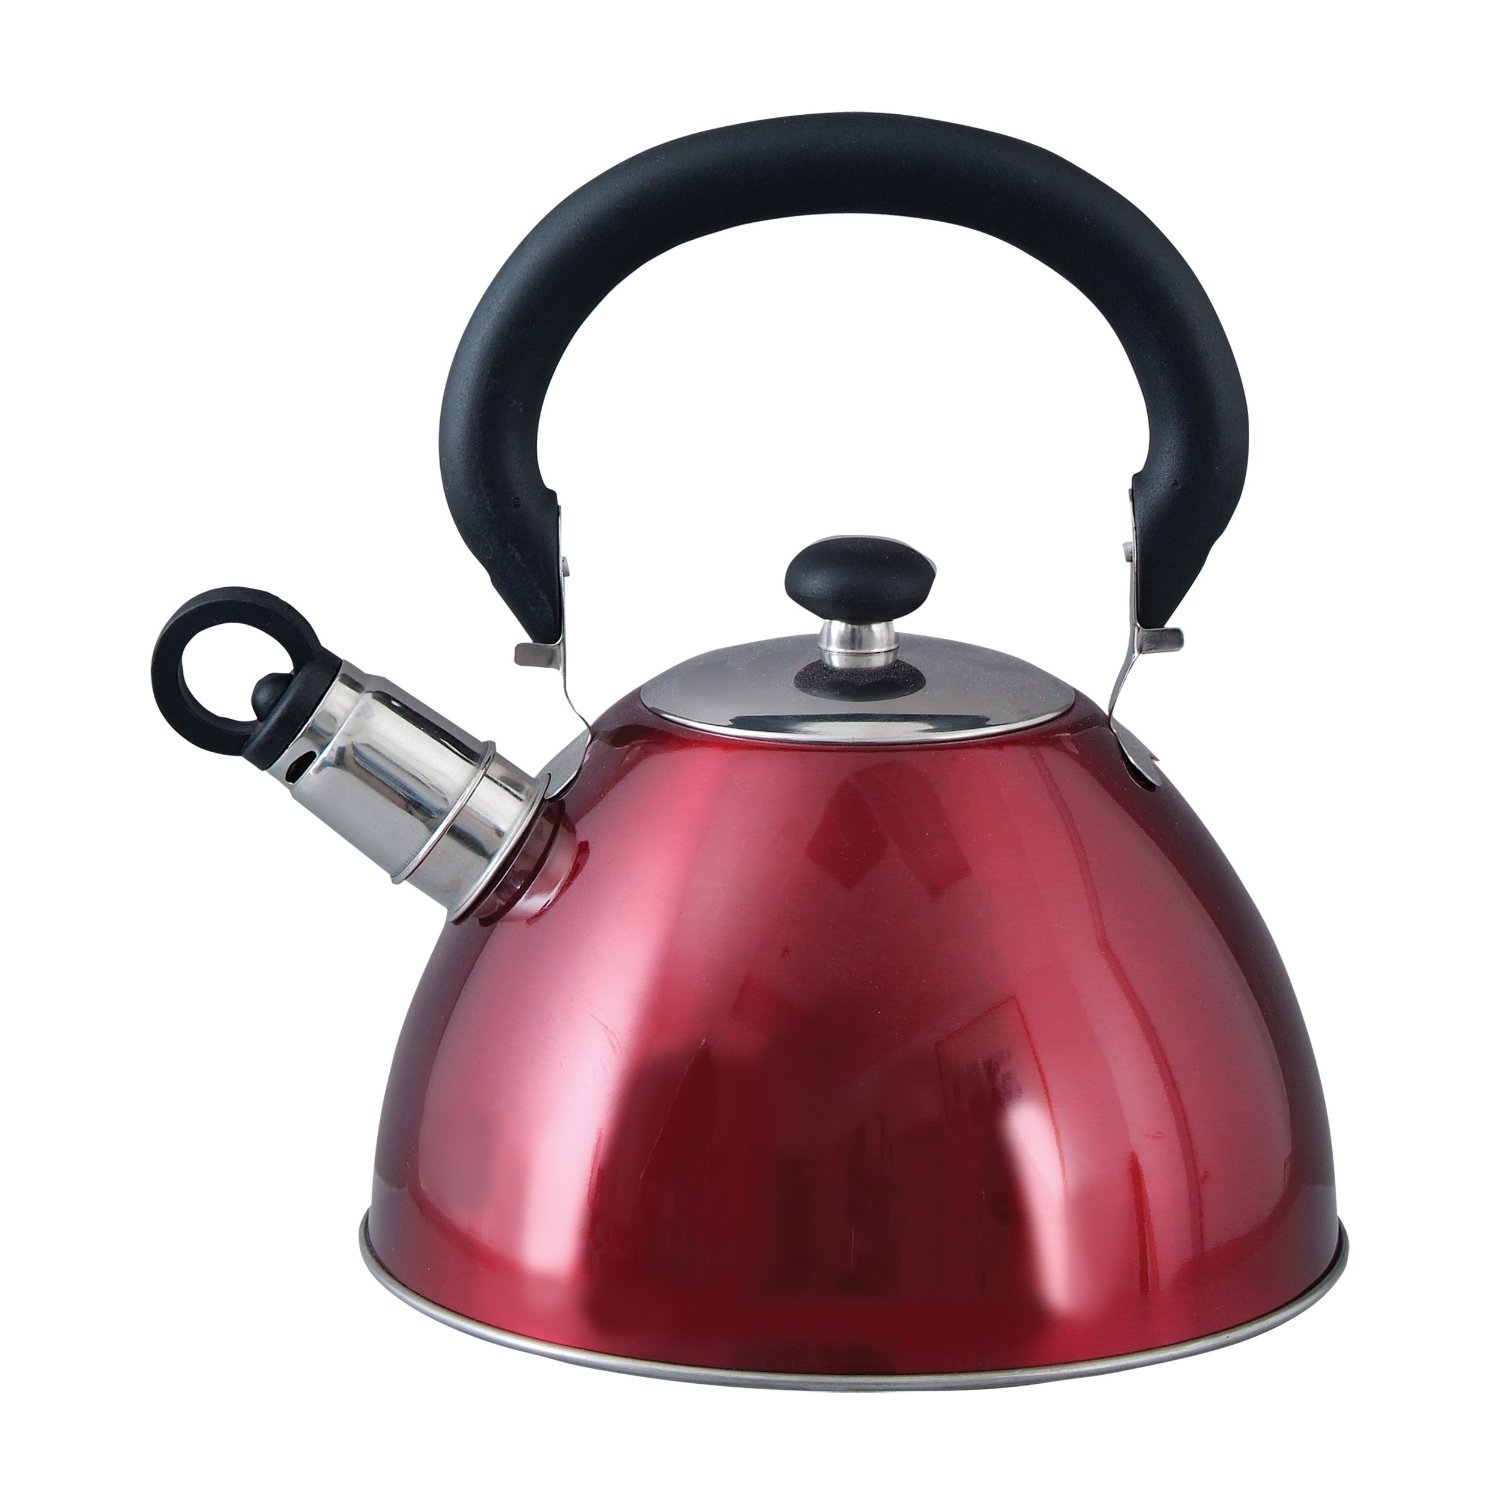 Brilliant tea kettles for kitchen and dining room with copper tea kettle